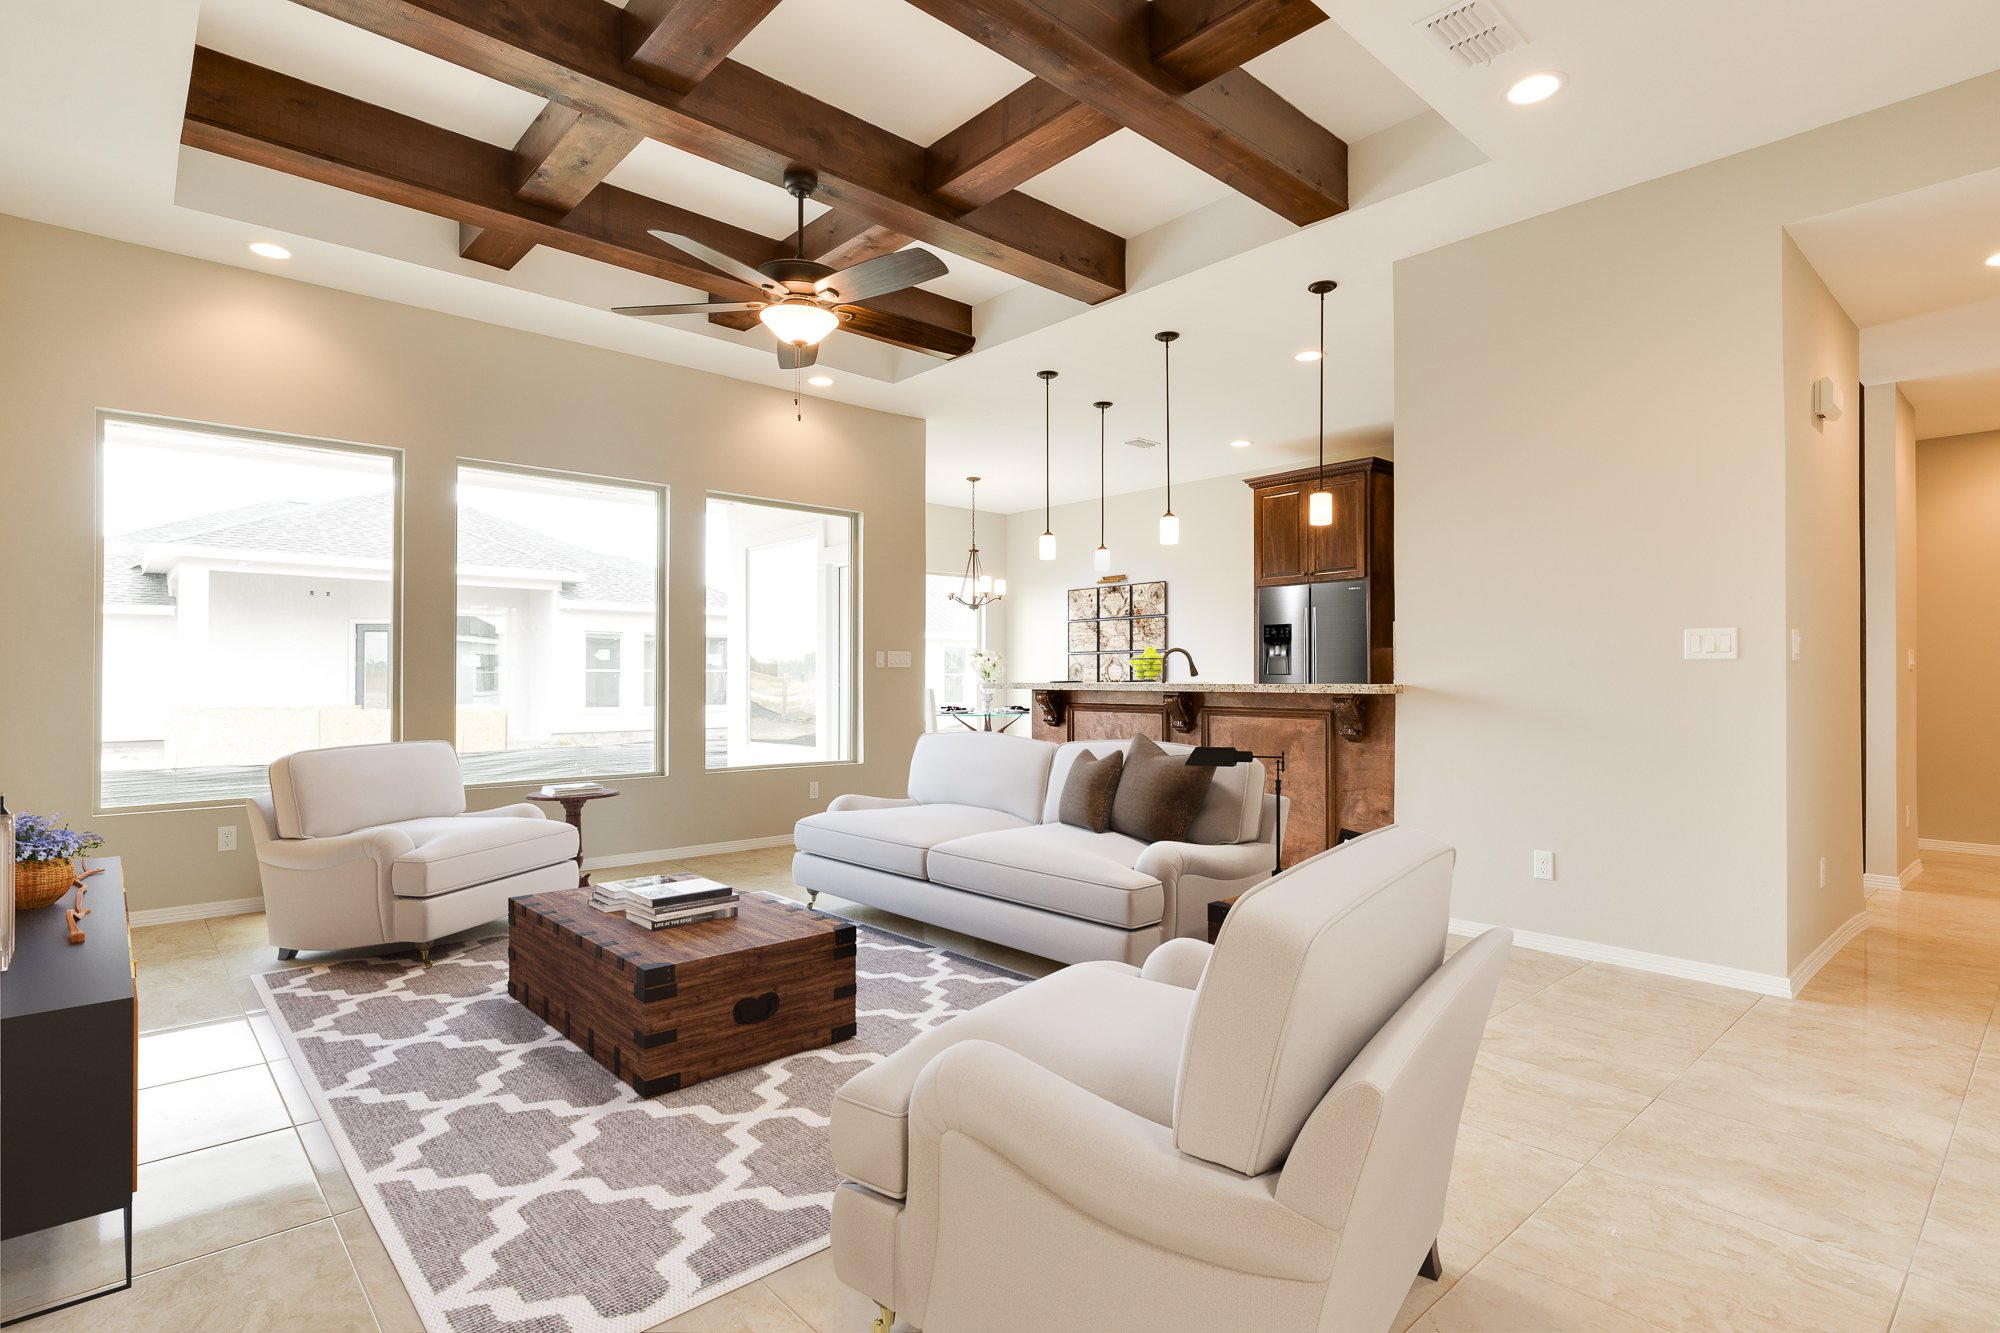 photorealistic virtual staging for real estate photograph rgv